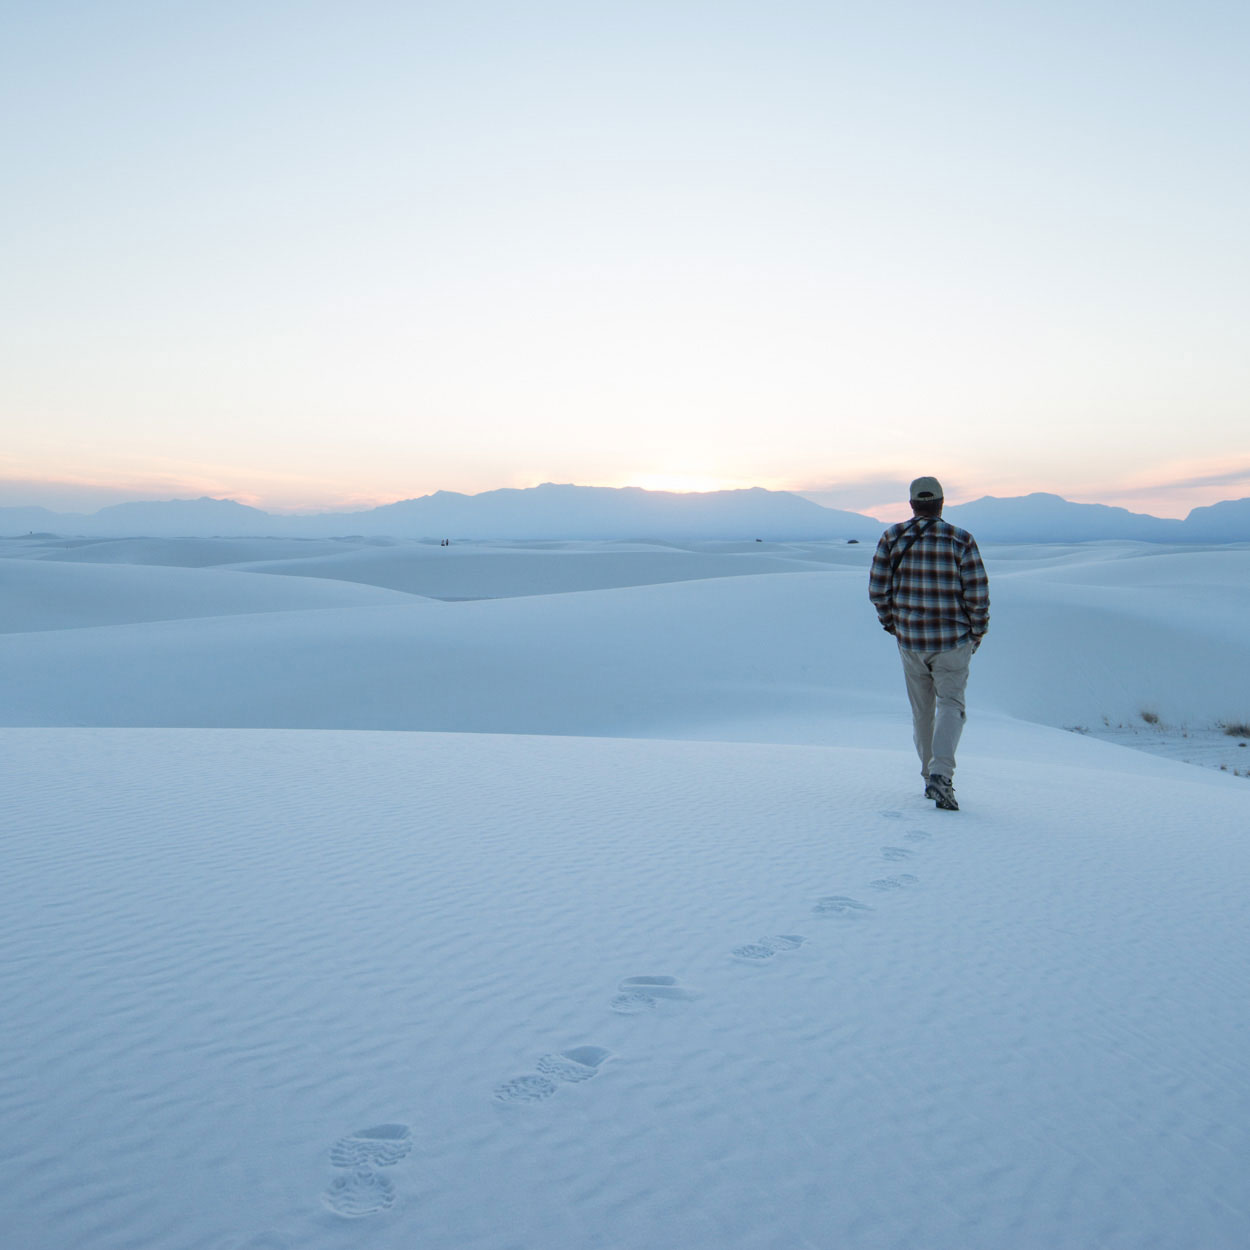 walking into the white sand dunes